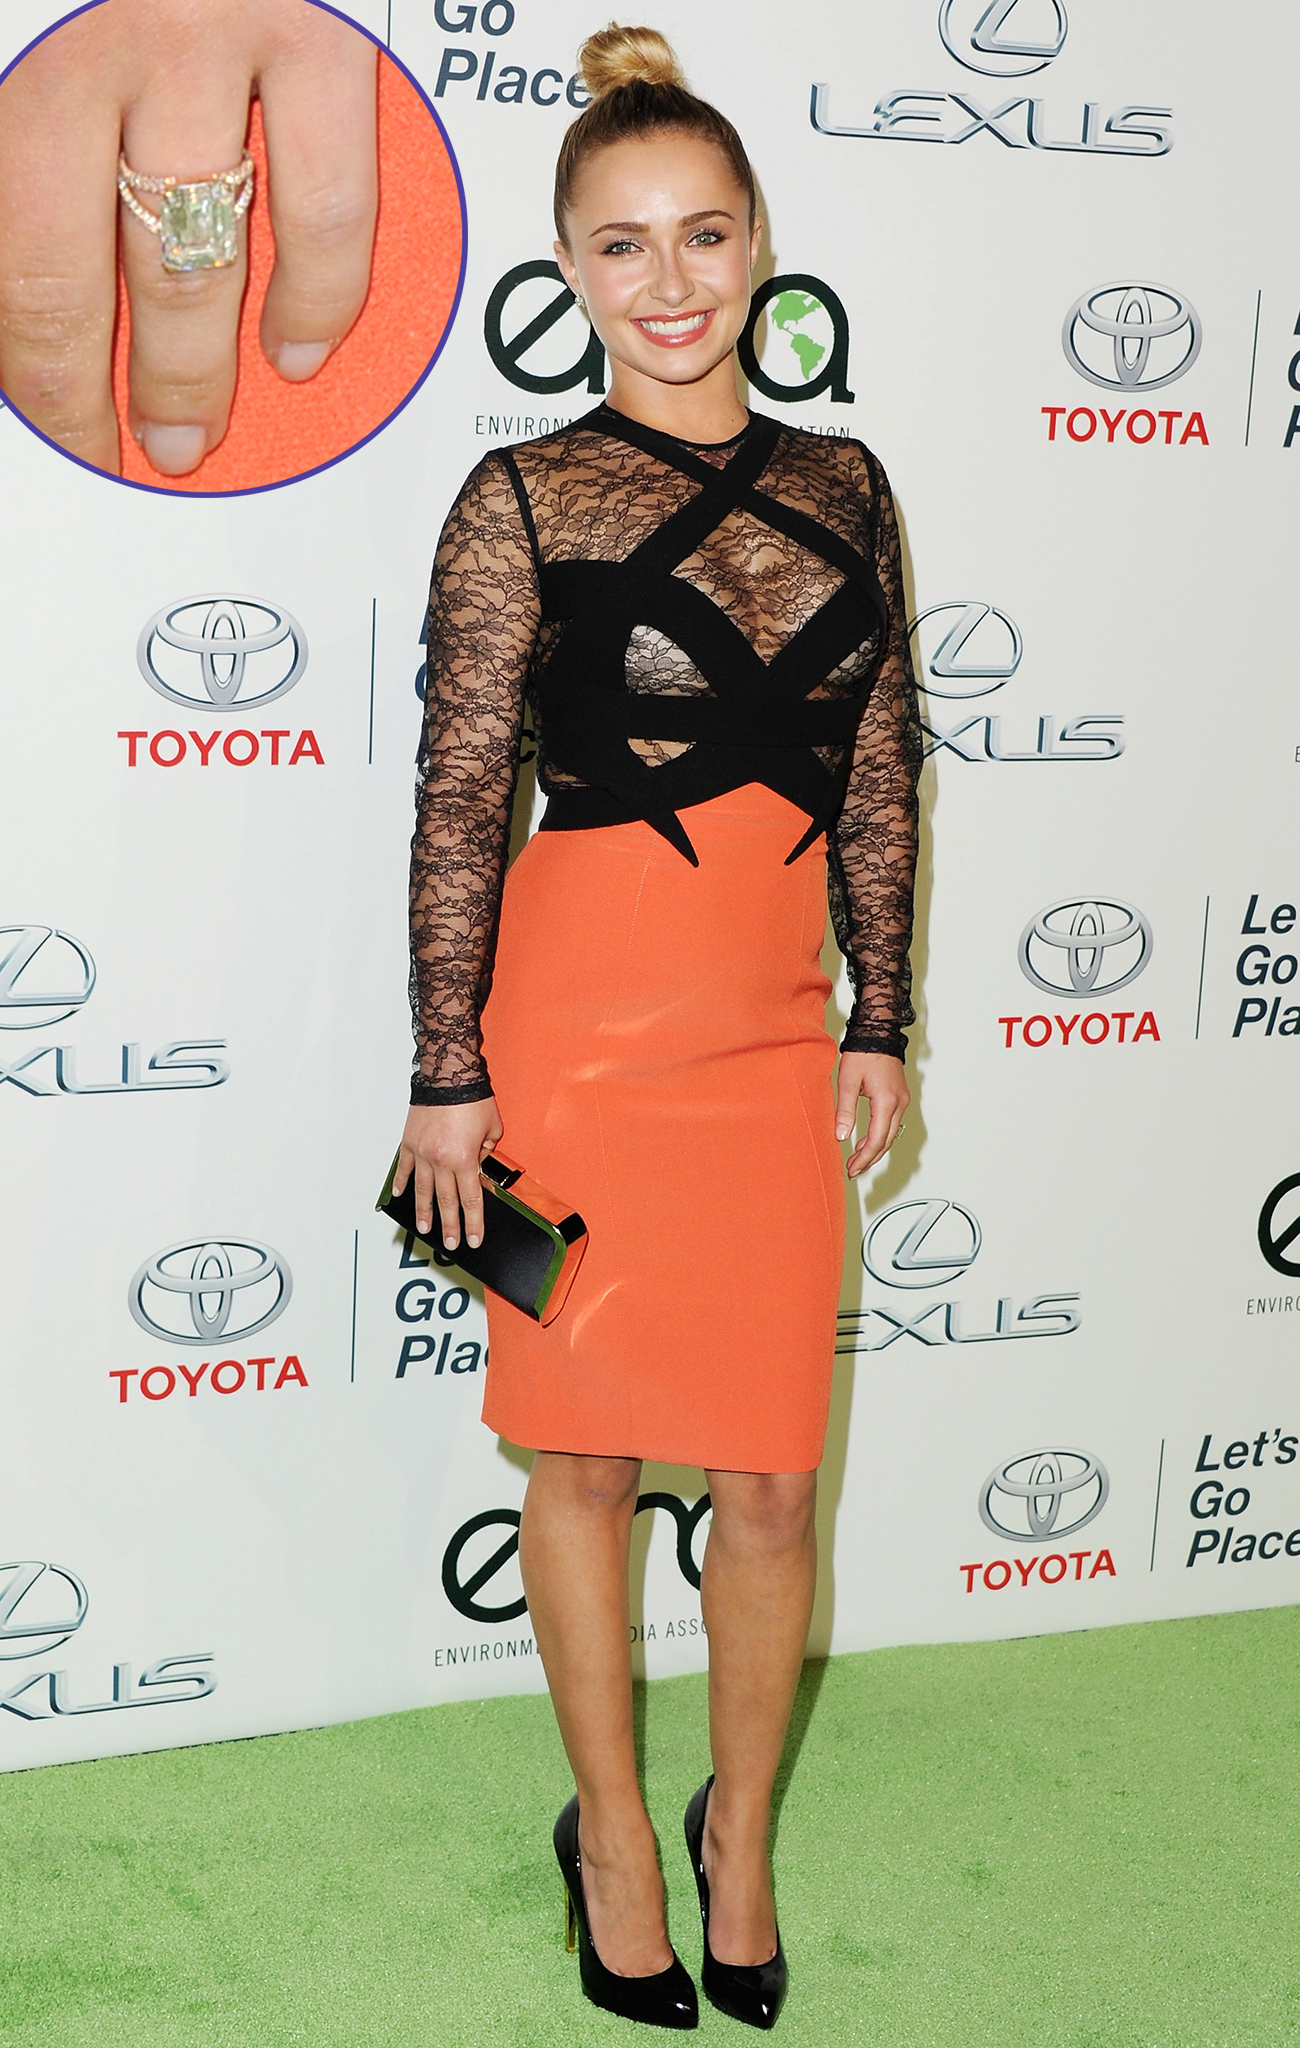 Hayden Panettiere Dons Daring Dress, Designed Her Own Engagement Ring